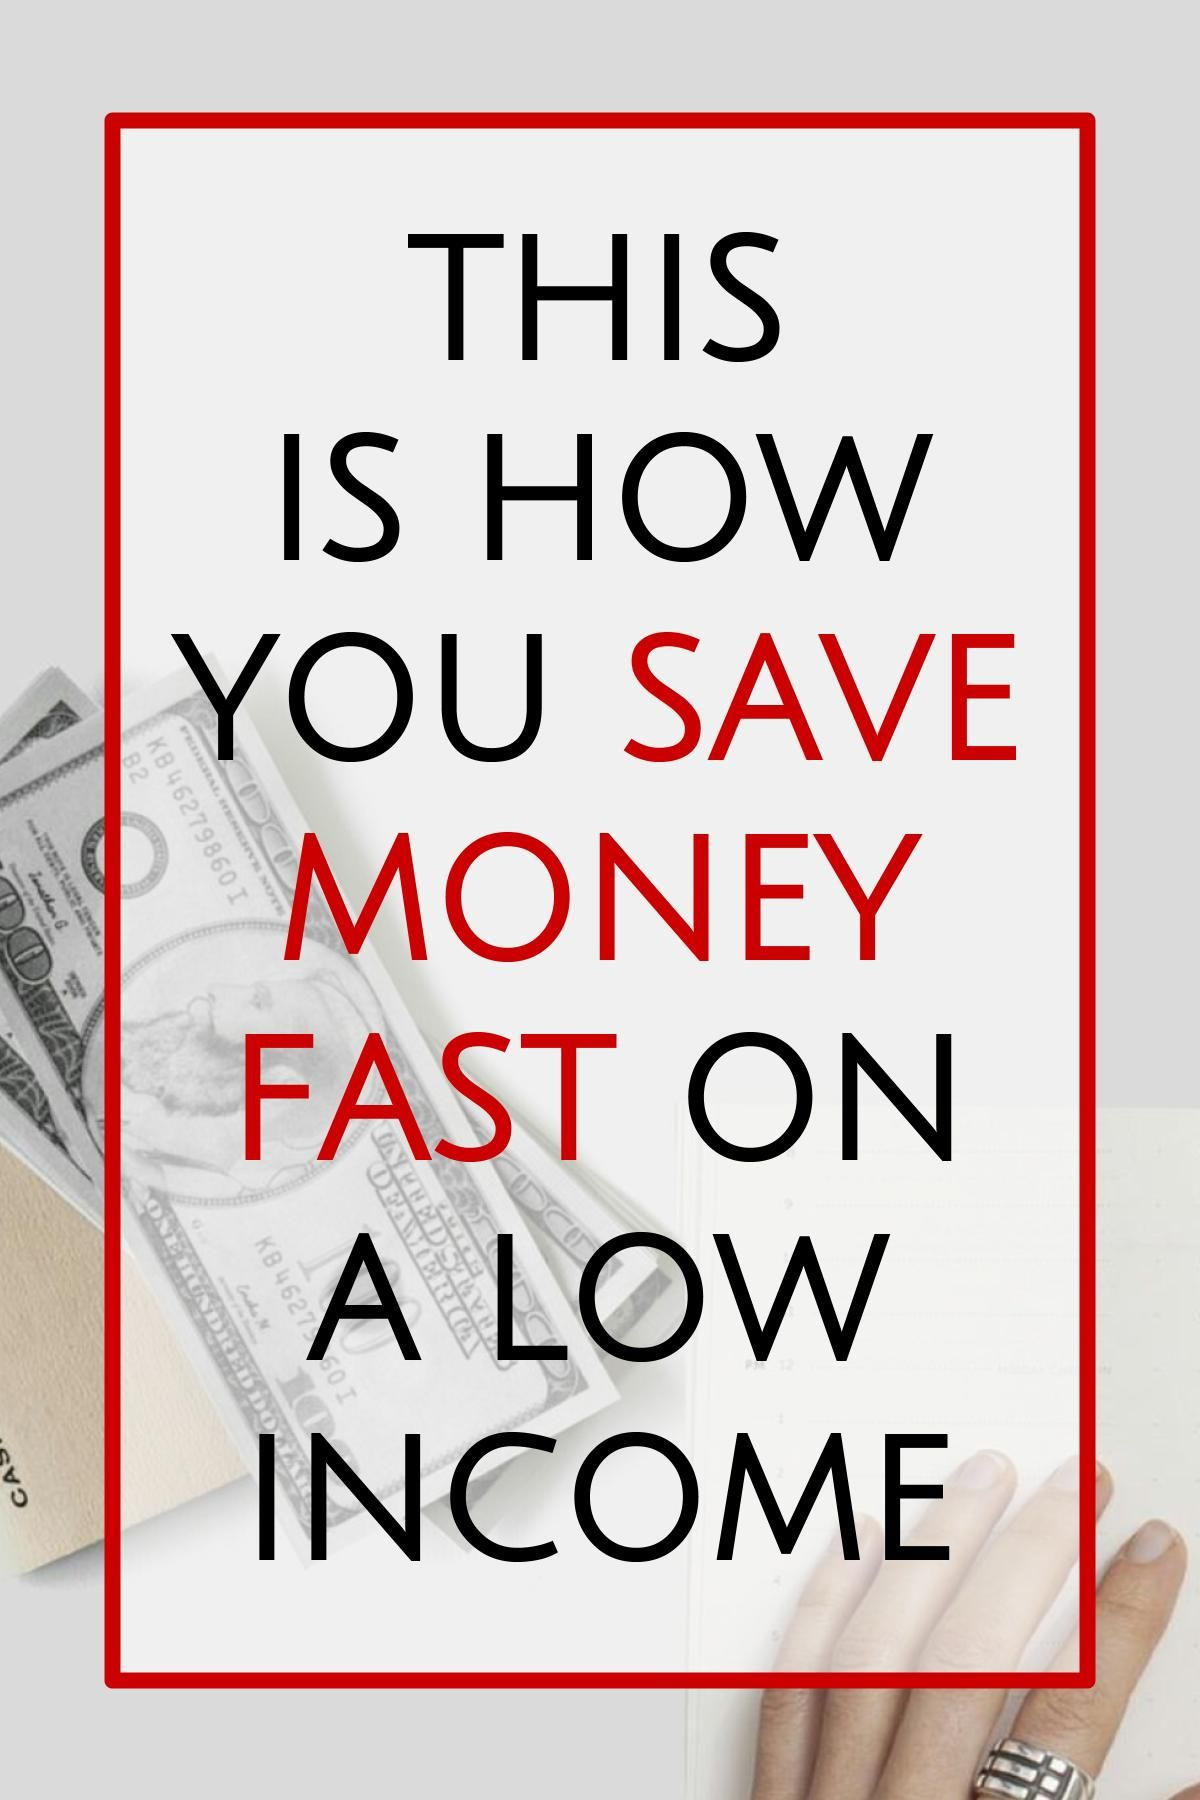 10 Ways We Saved 30 000 Fast On A Low Income In Only 1